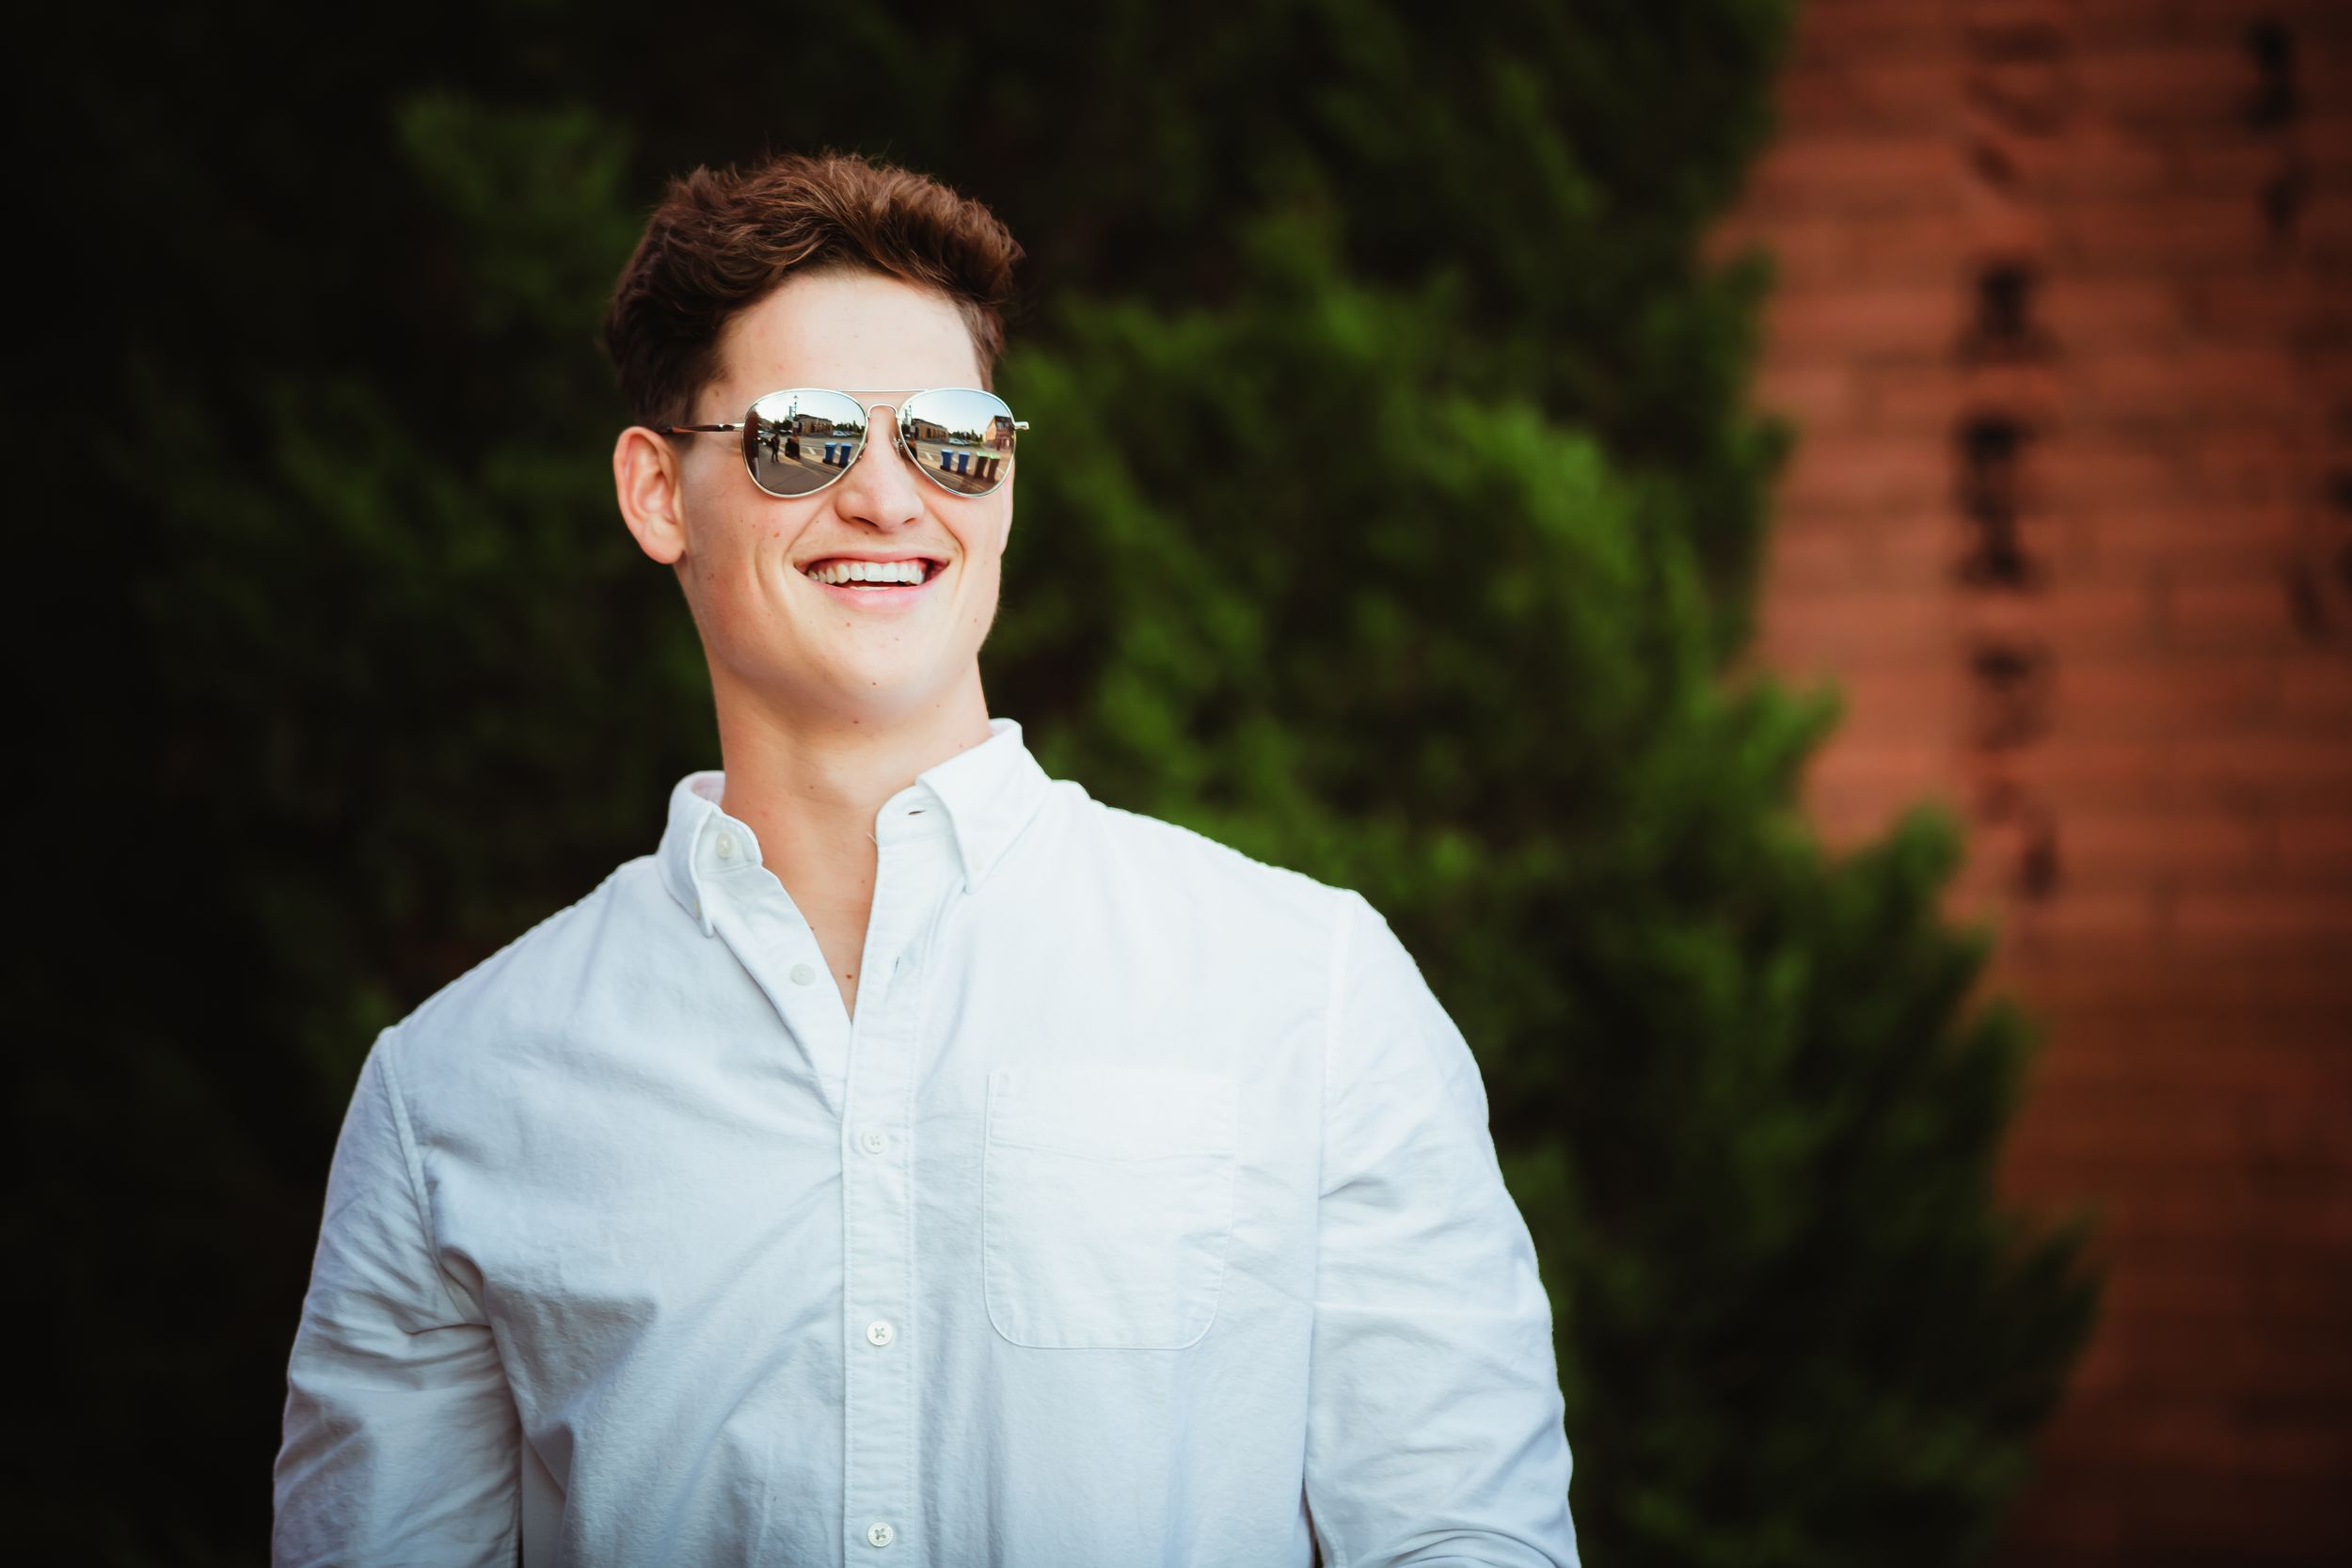 Close up of a high school boy smiling to his left wearing a white button up shirt and reflective aviator sunglasses.